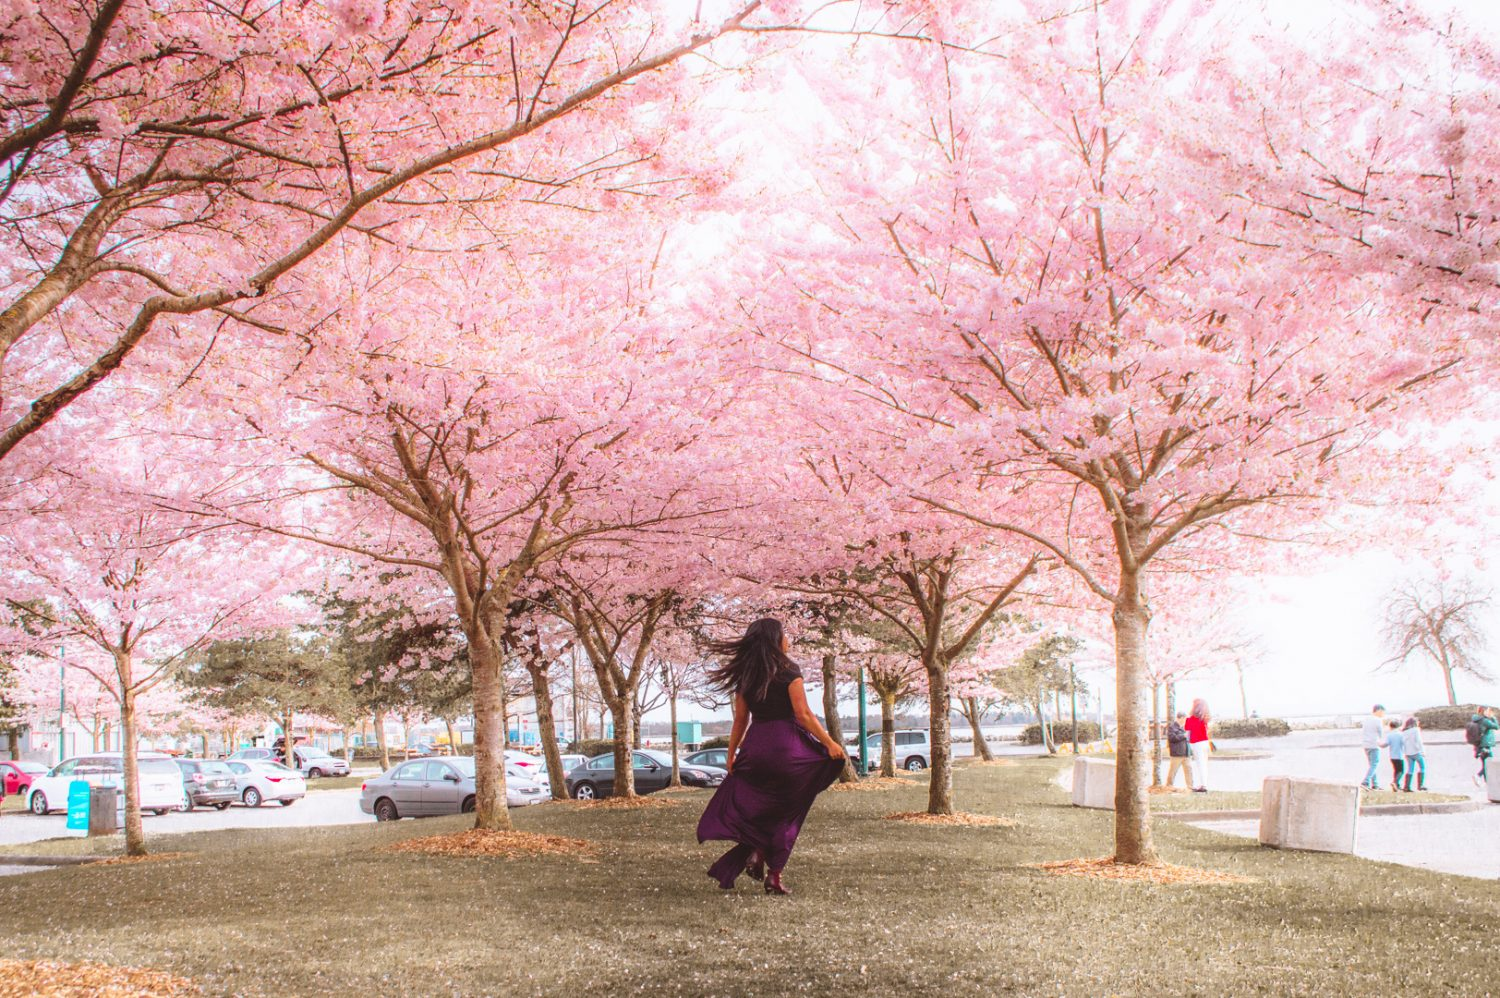 An epic guide on the most gorgeous places to photograph cherry blossoms in Vancouver this year! #Vancouver #CherryBlossoms #Canada #Travel